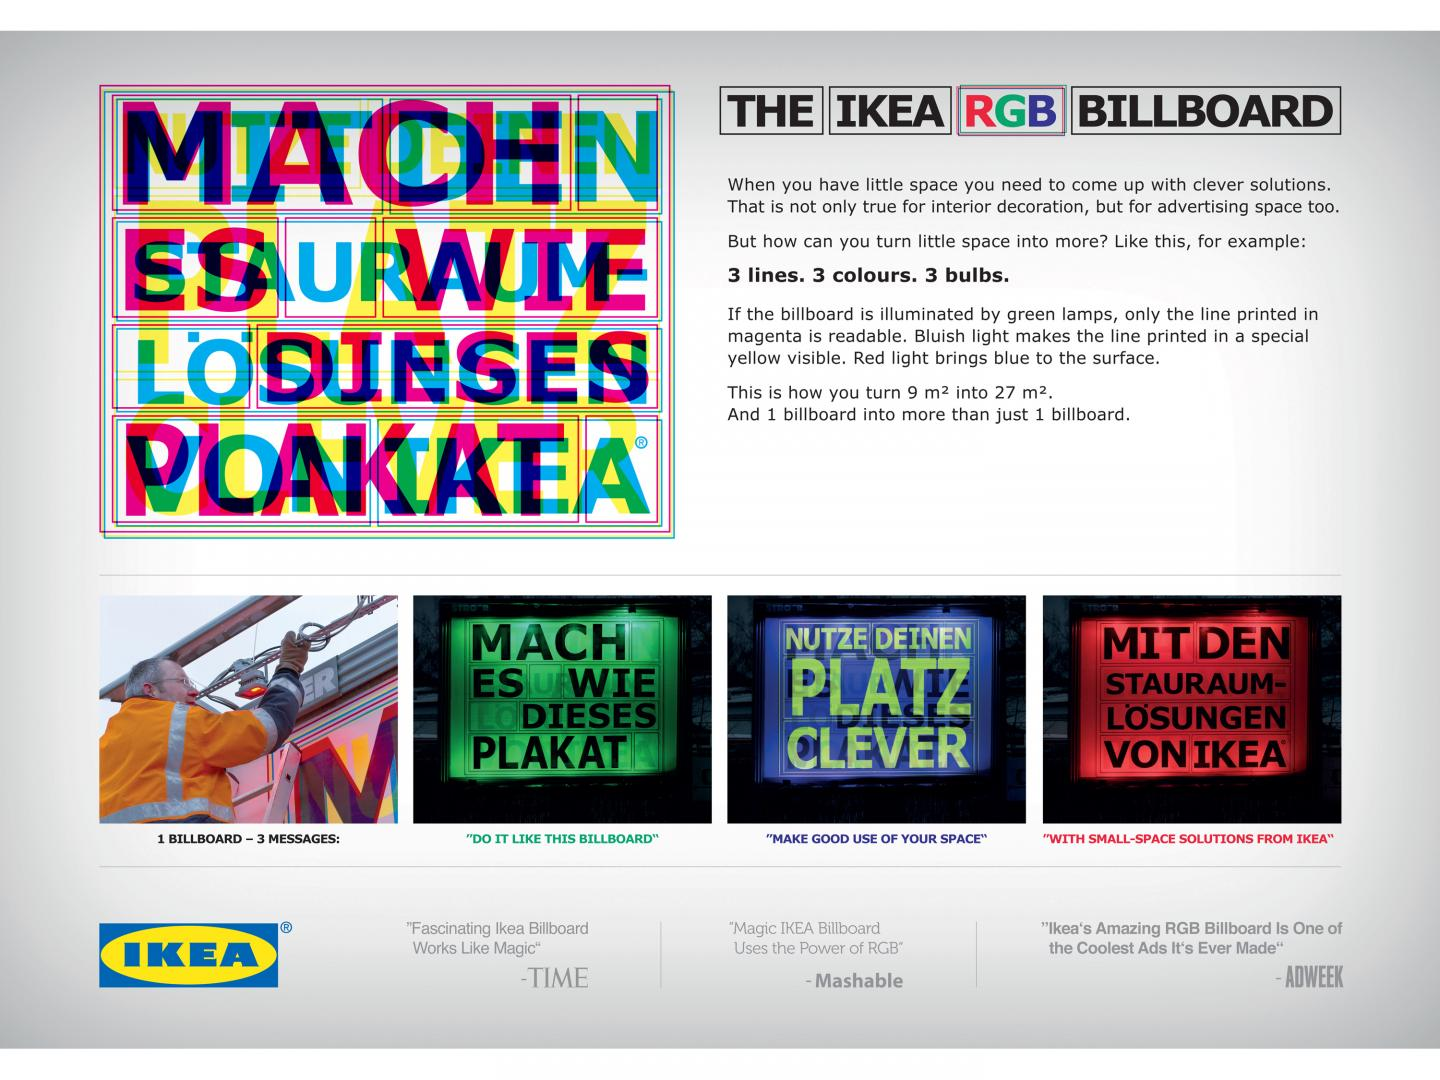 THE IKEA RGB BILLBOARD Thumbnail